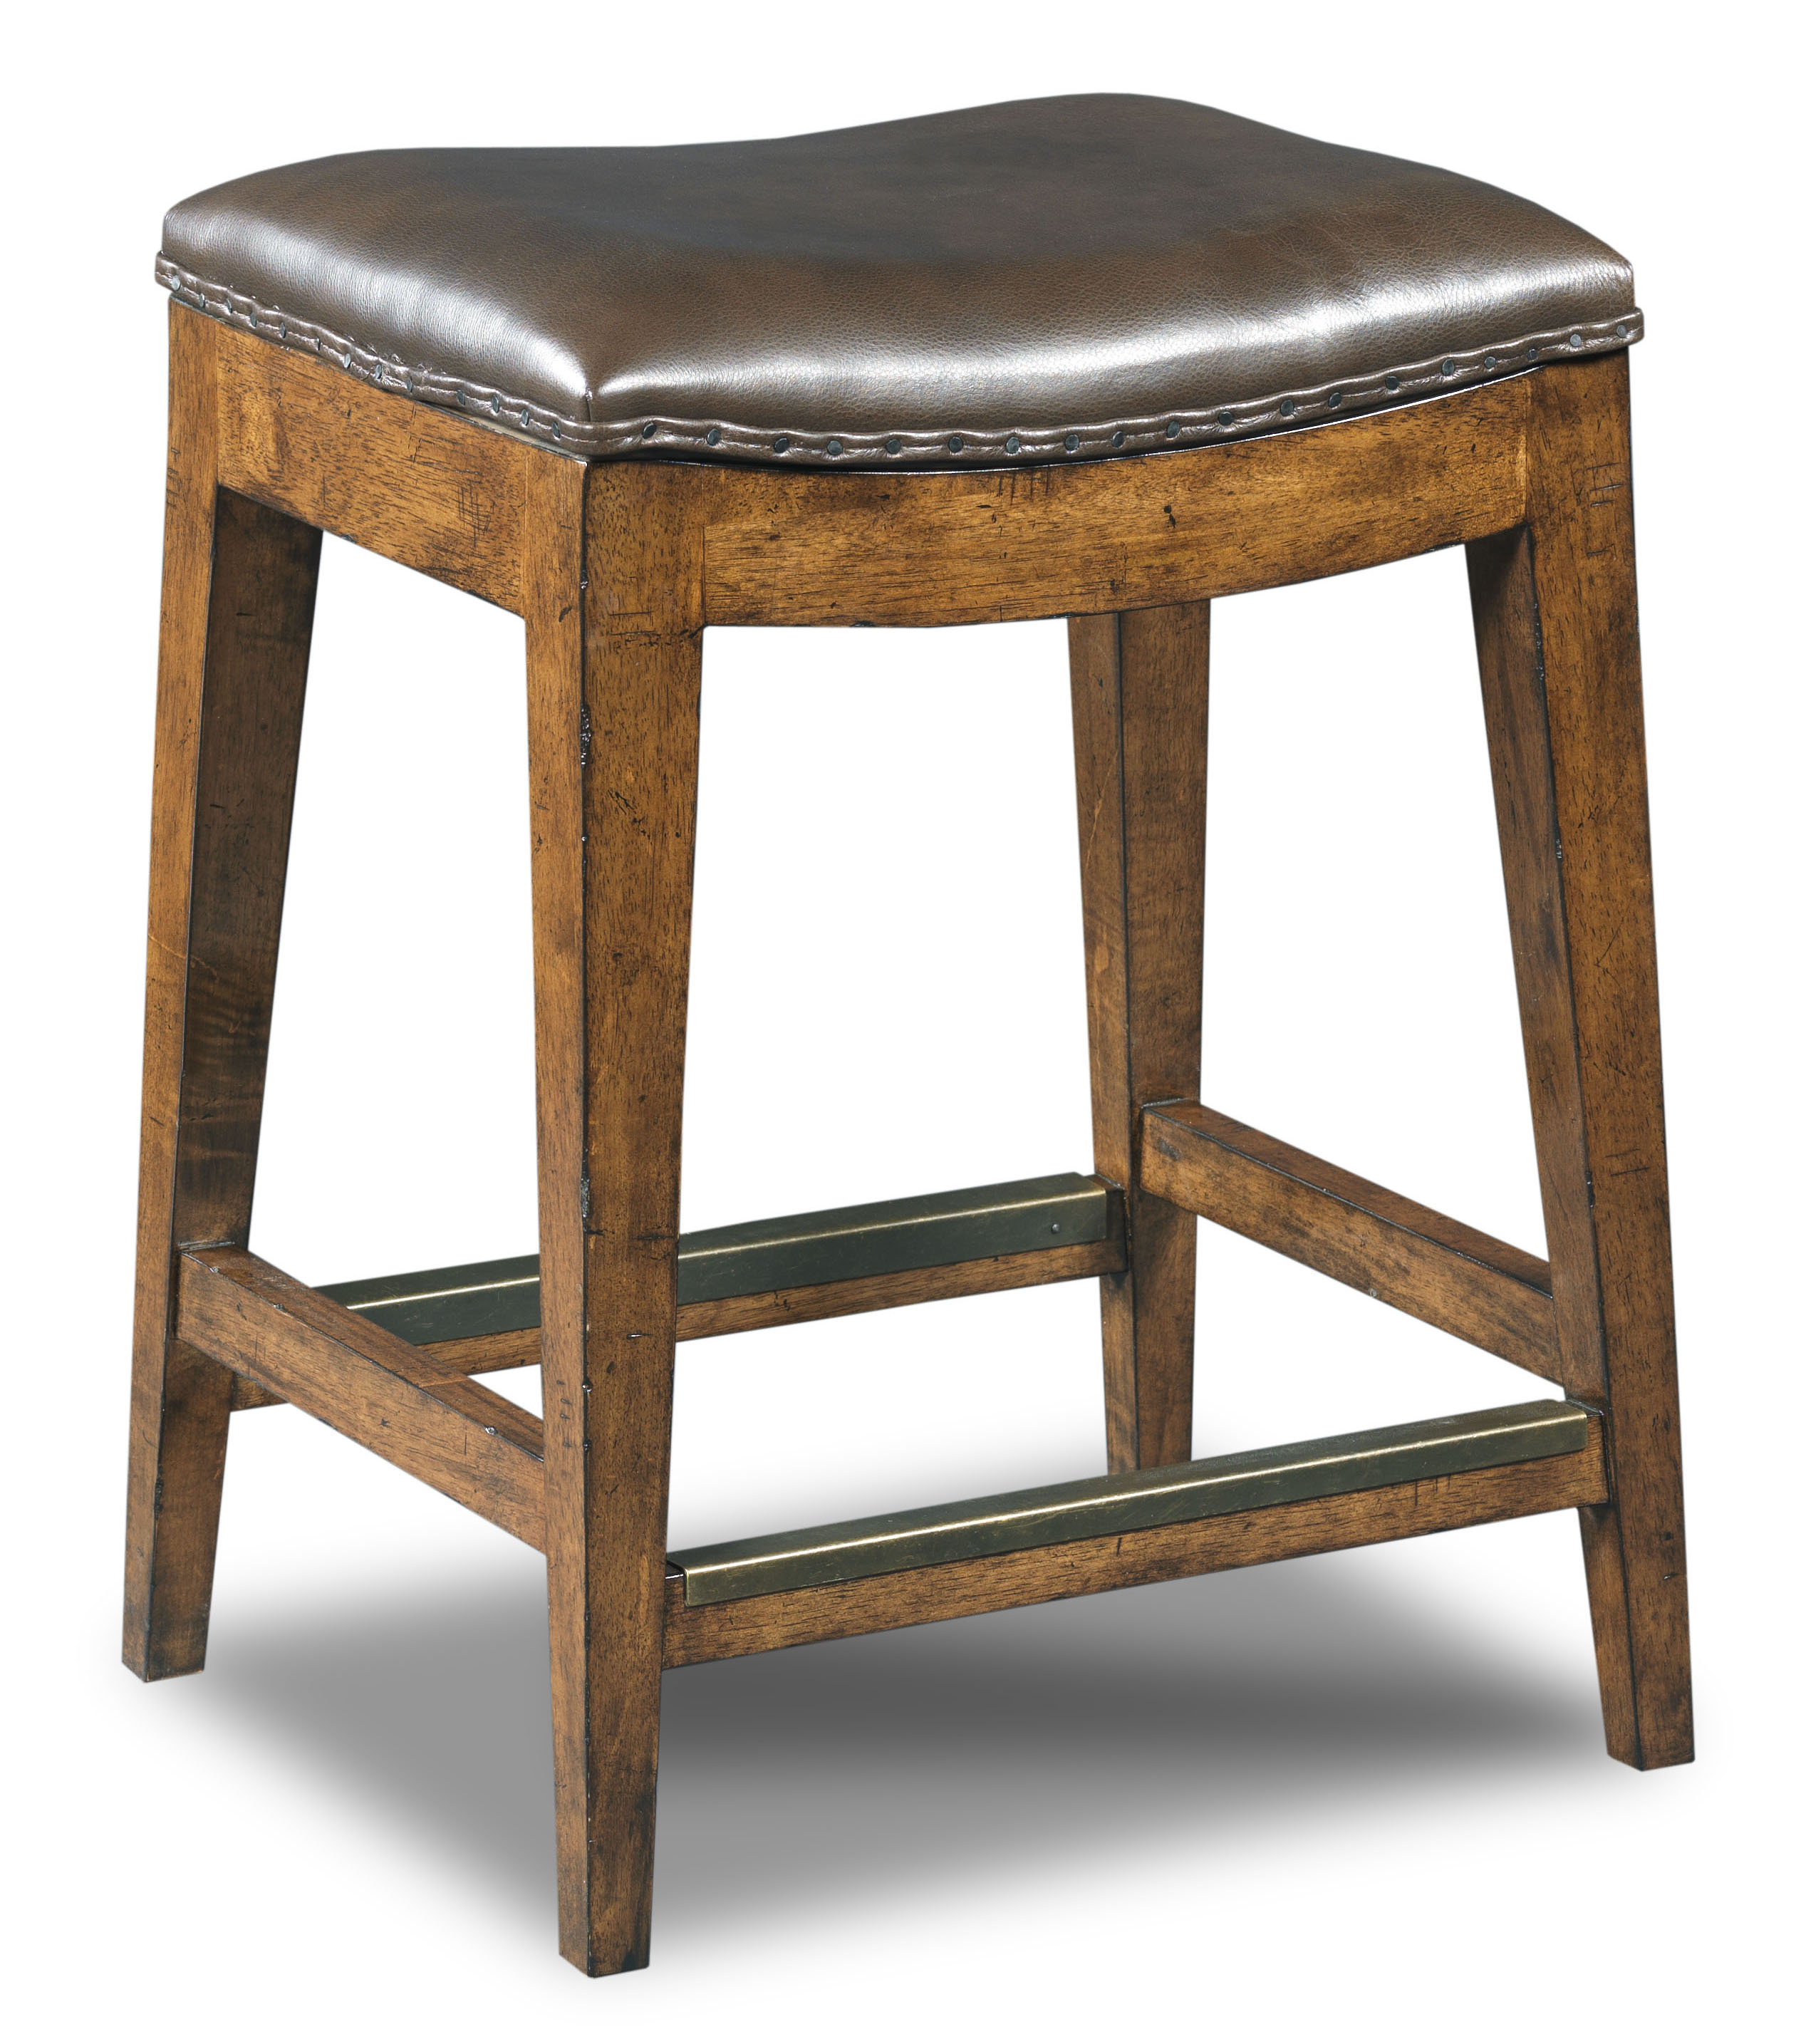 Hooker Furniture Stools Medium Sangria Rec Backless Counter Stool - Item Number: 300-25014